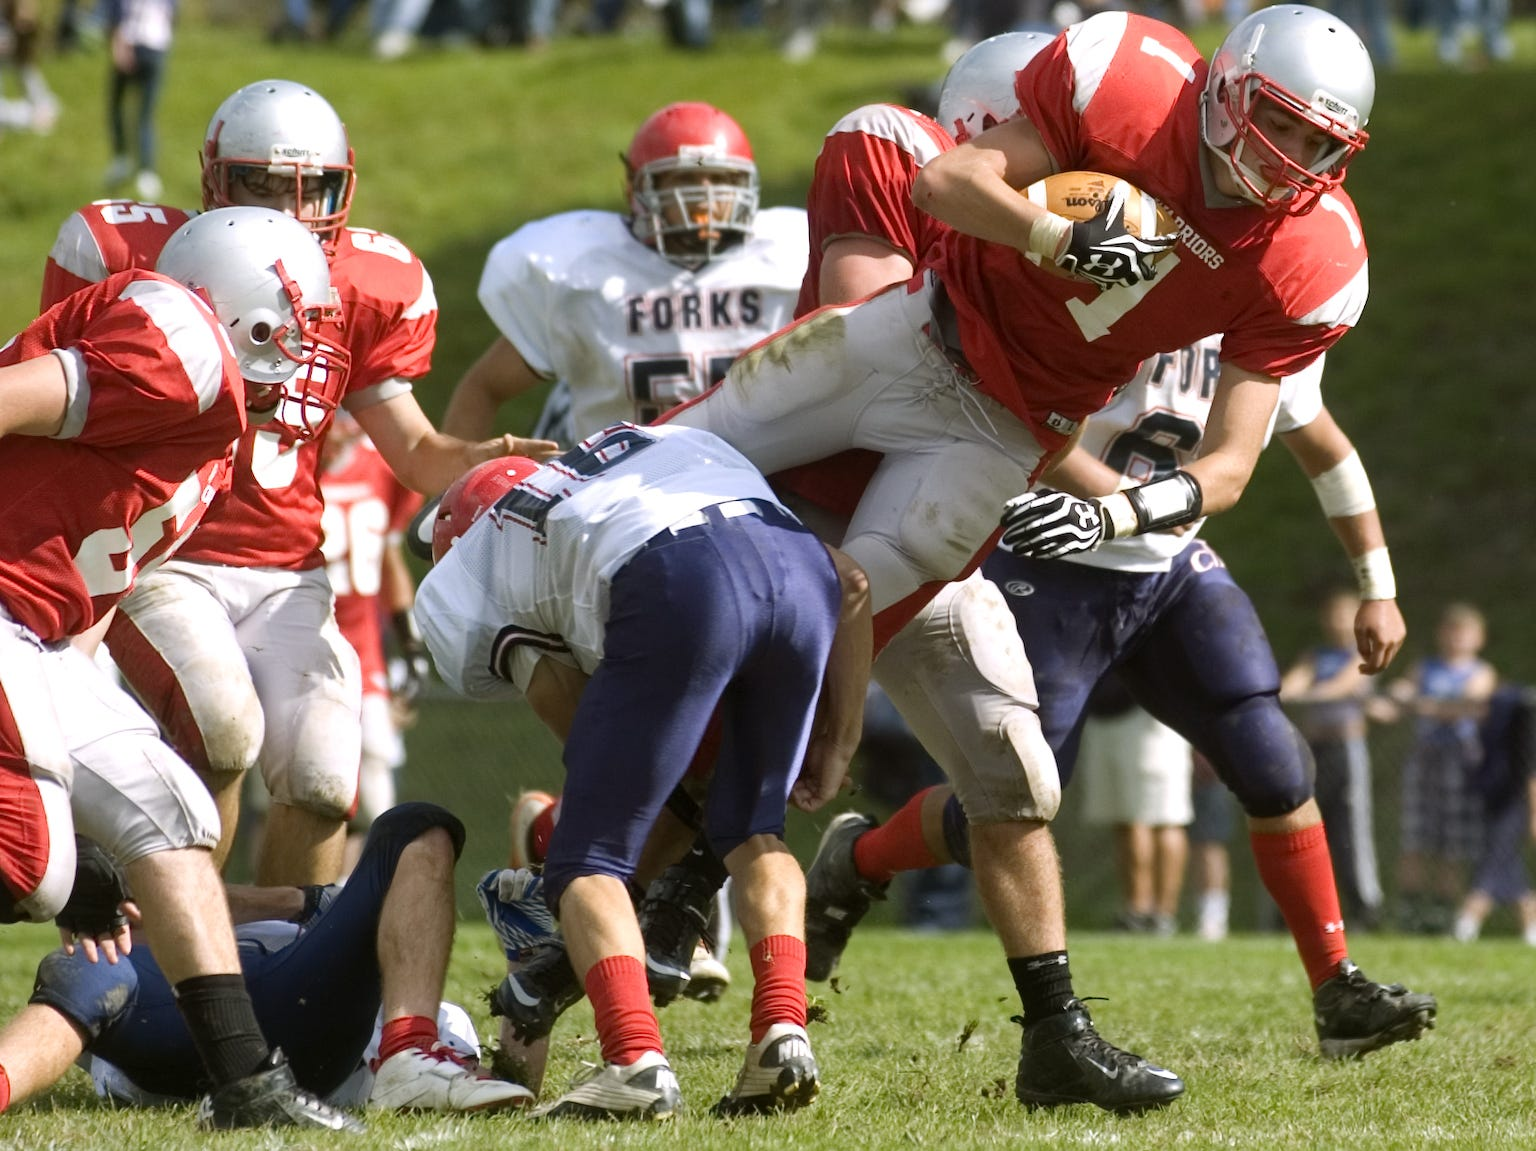 From 2012: Chenango Forks' Jack Sherwood tackles Chenango Valley's Zach Collins in the first half Saturday.